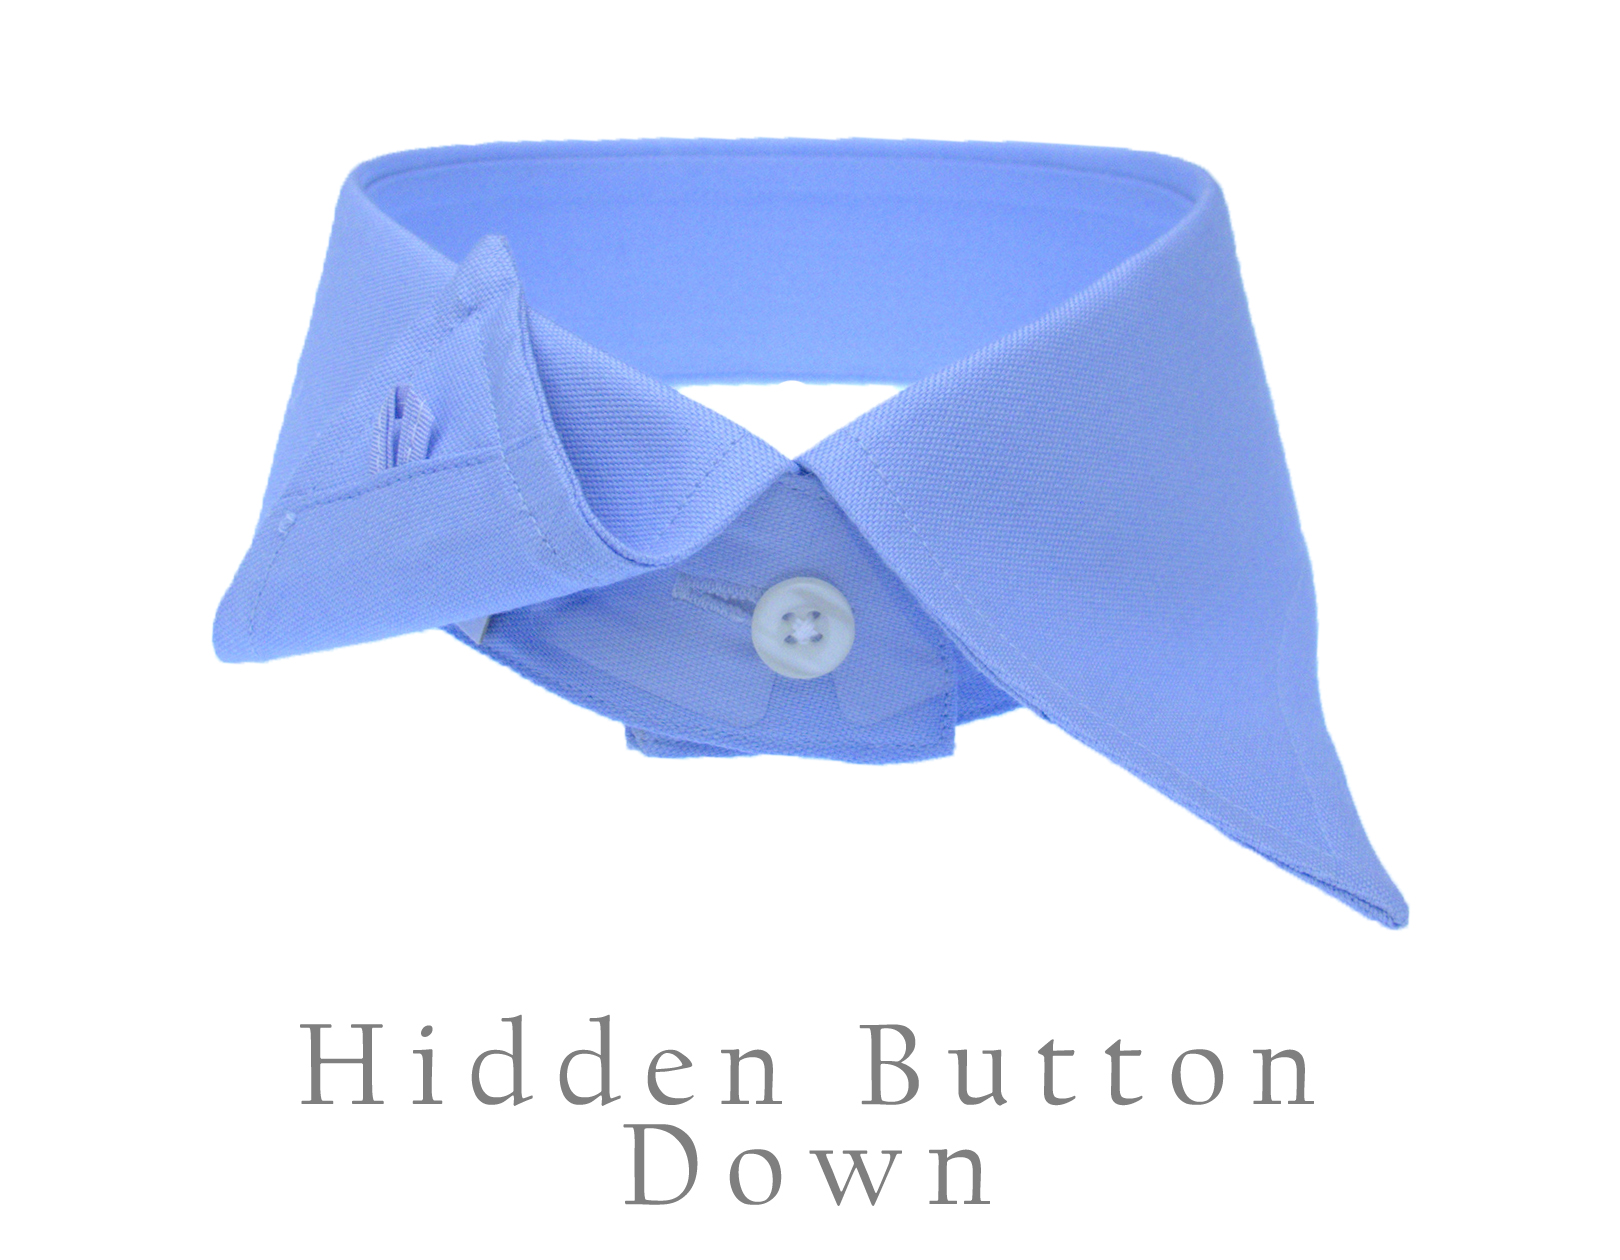 Hidden Button Down.jpg